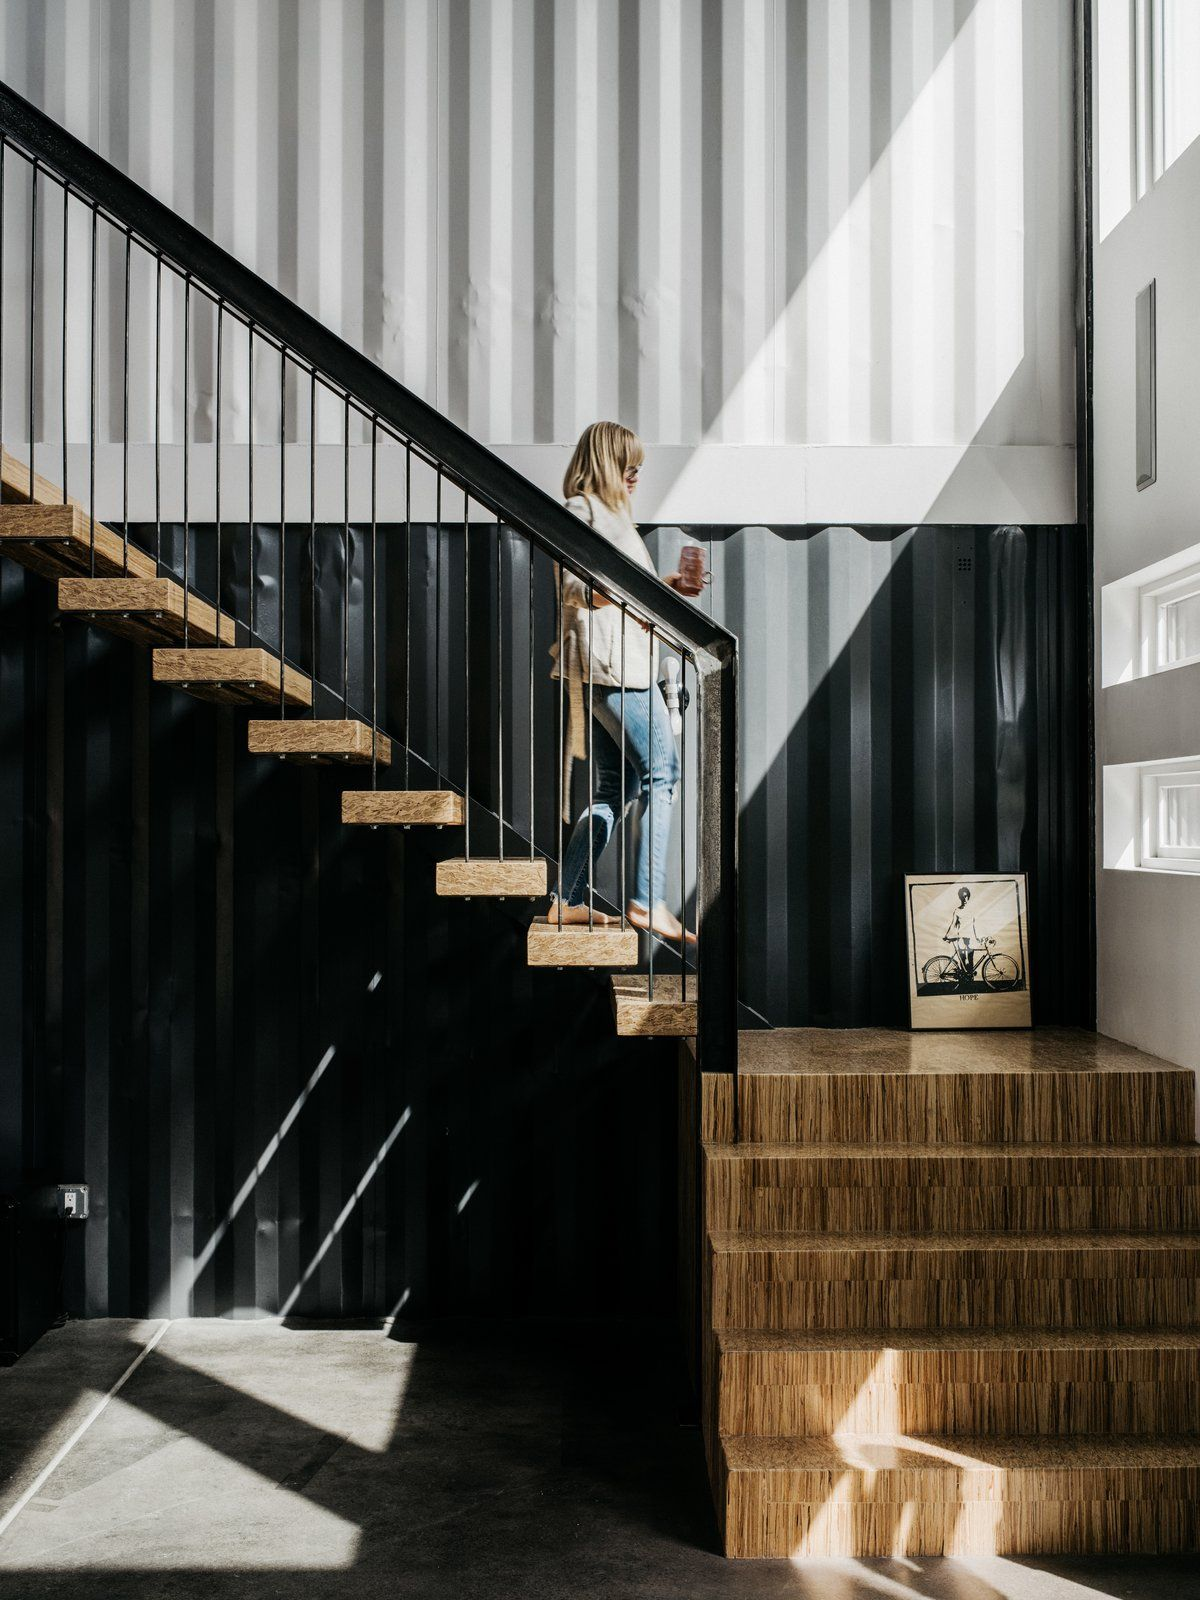 The cold and rugged nature of the metal container frames is balanced by lots of warm wood